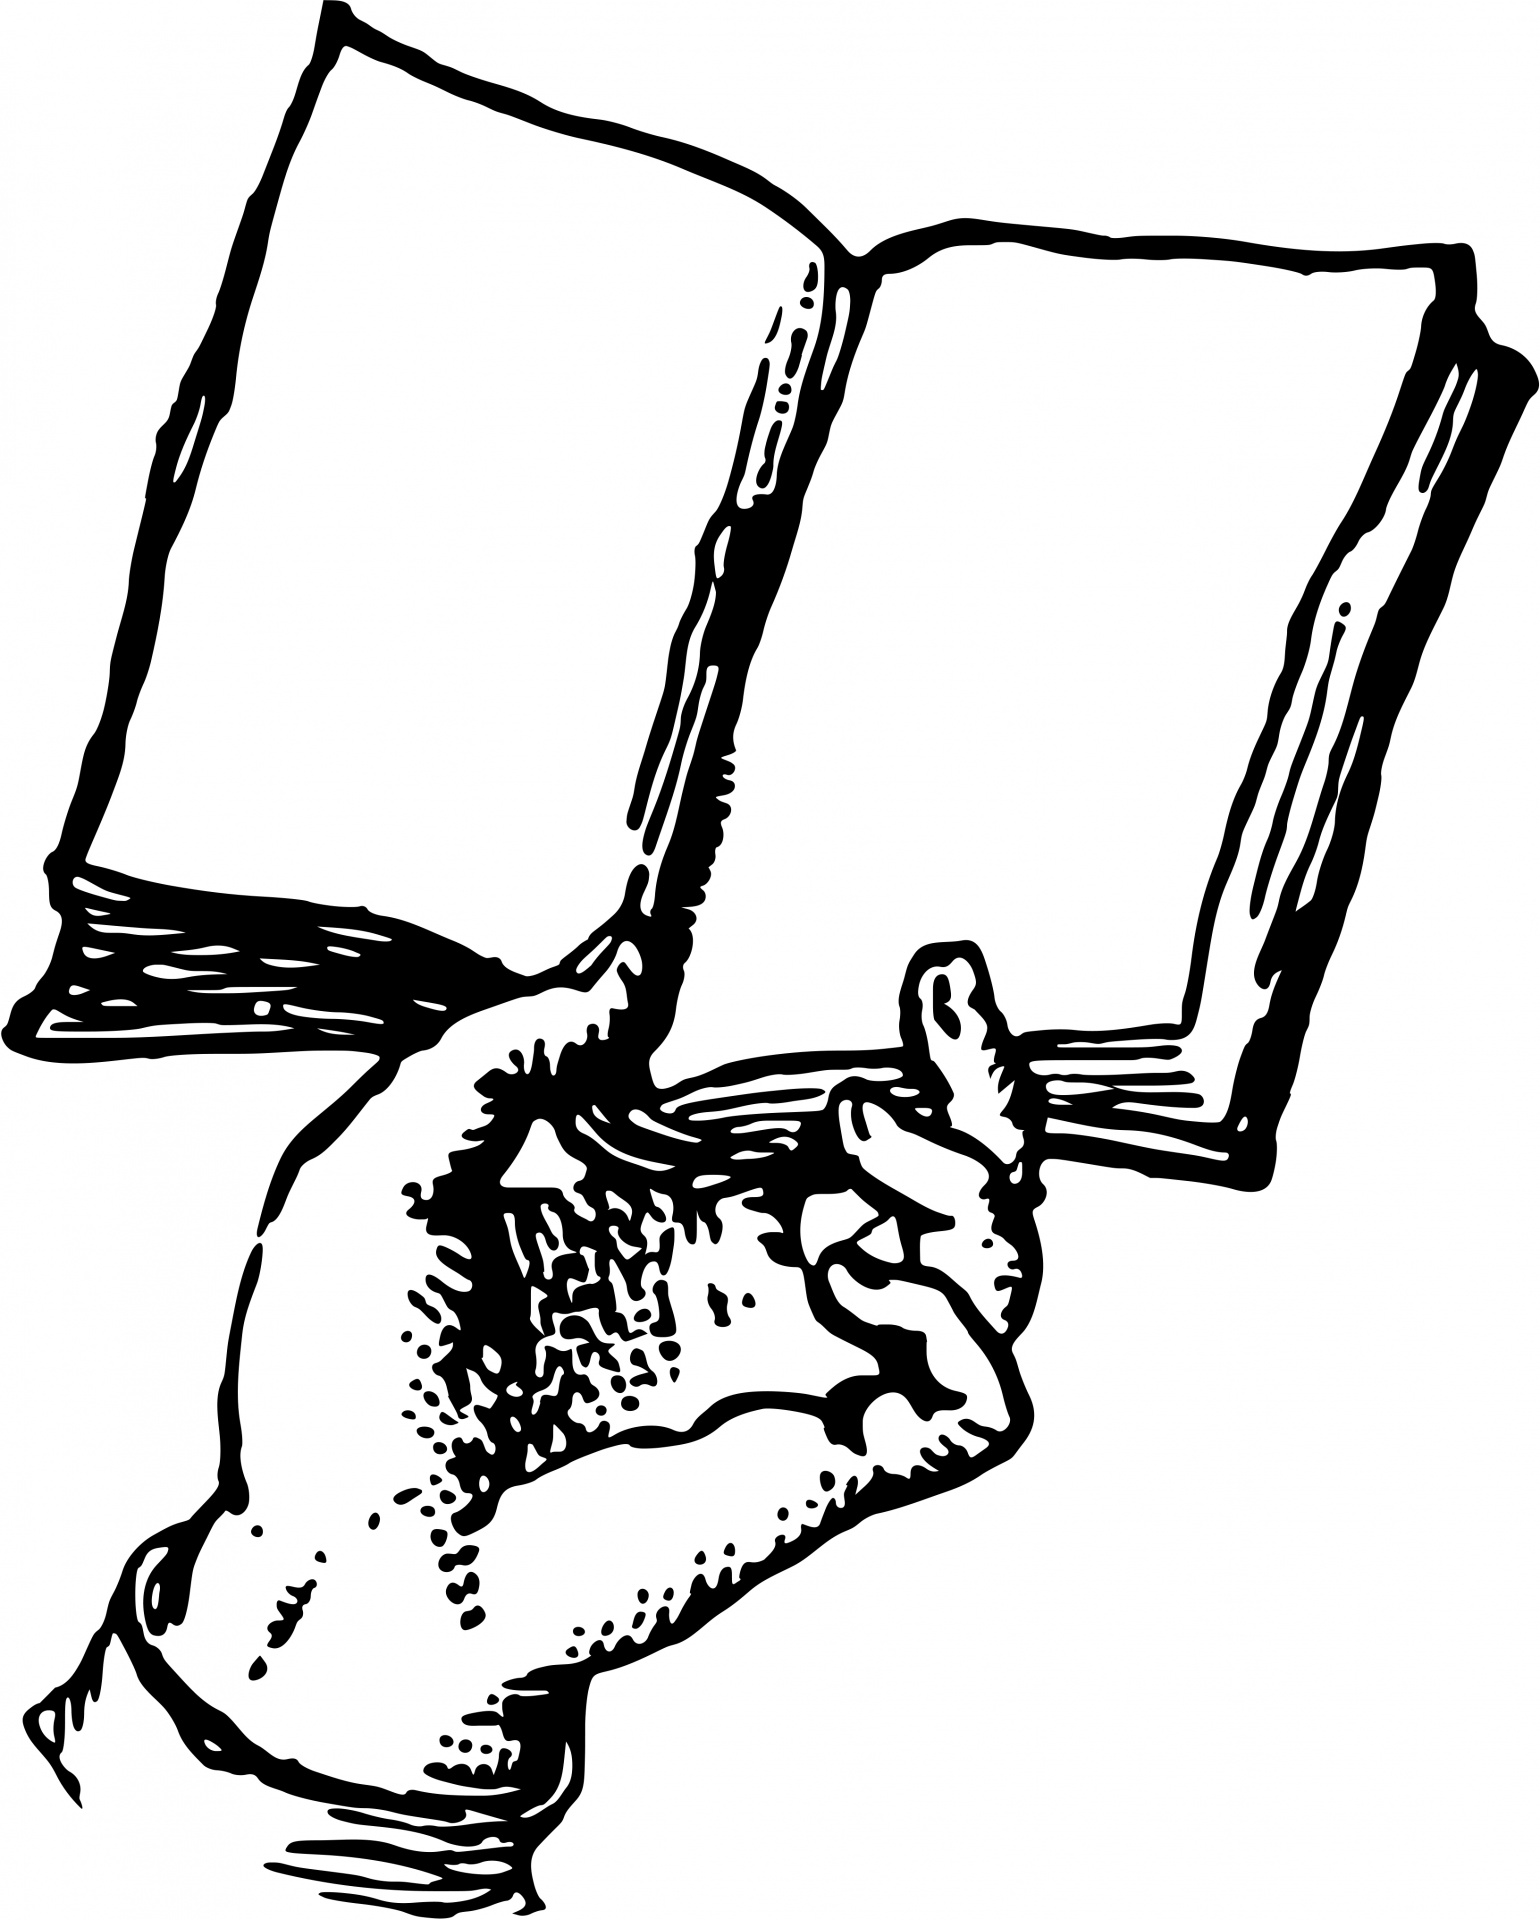 Free Vintage Books Cliparts, Download Free Clip Art, Free.